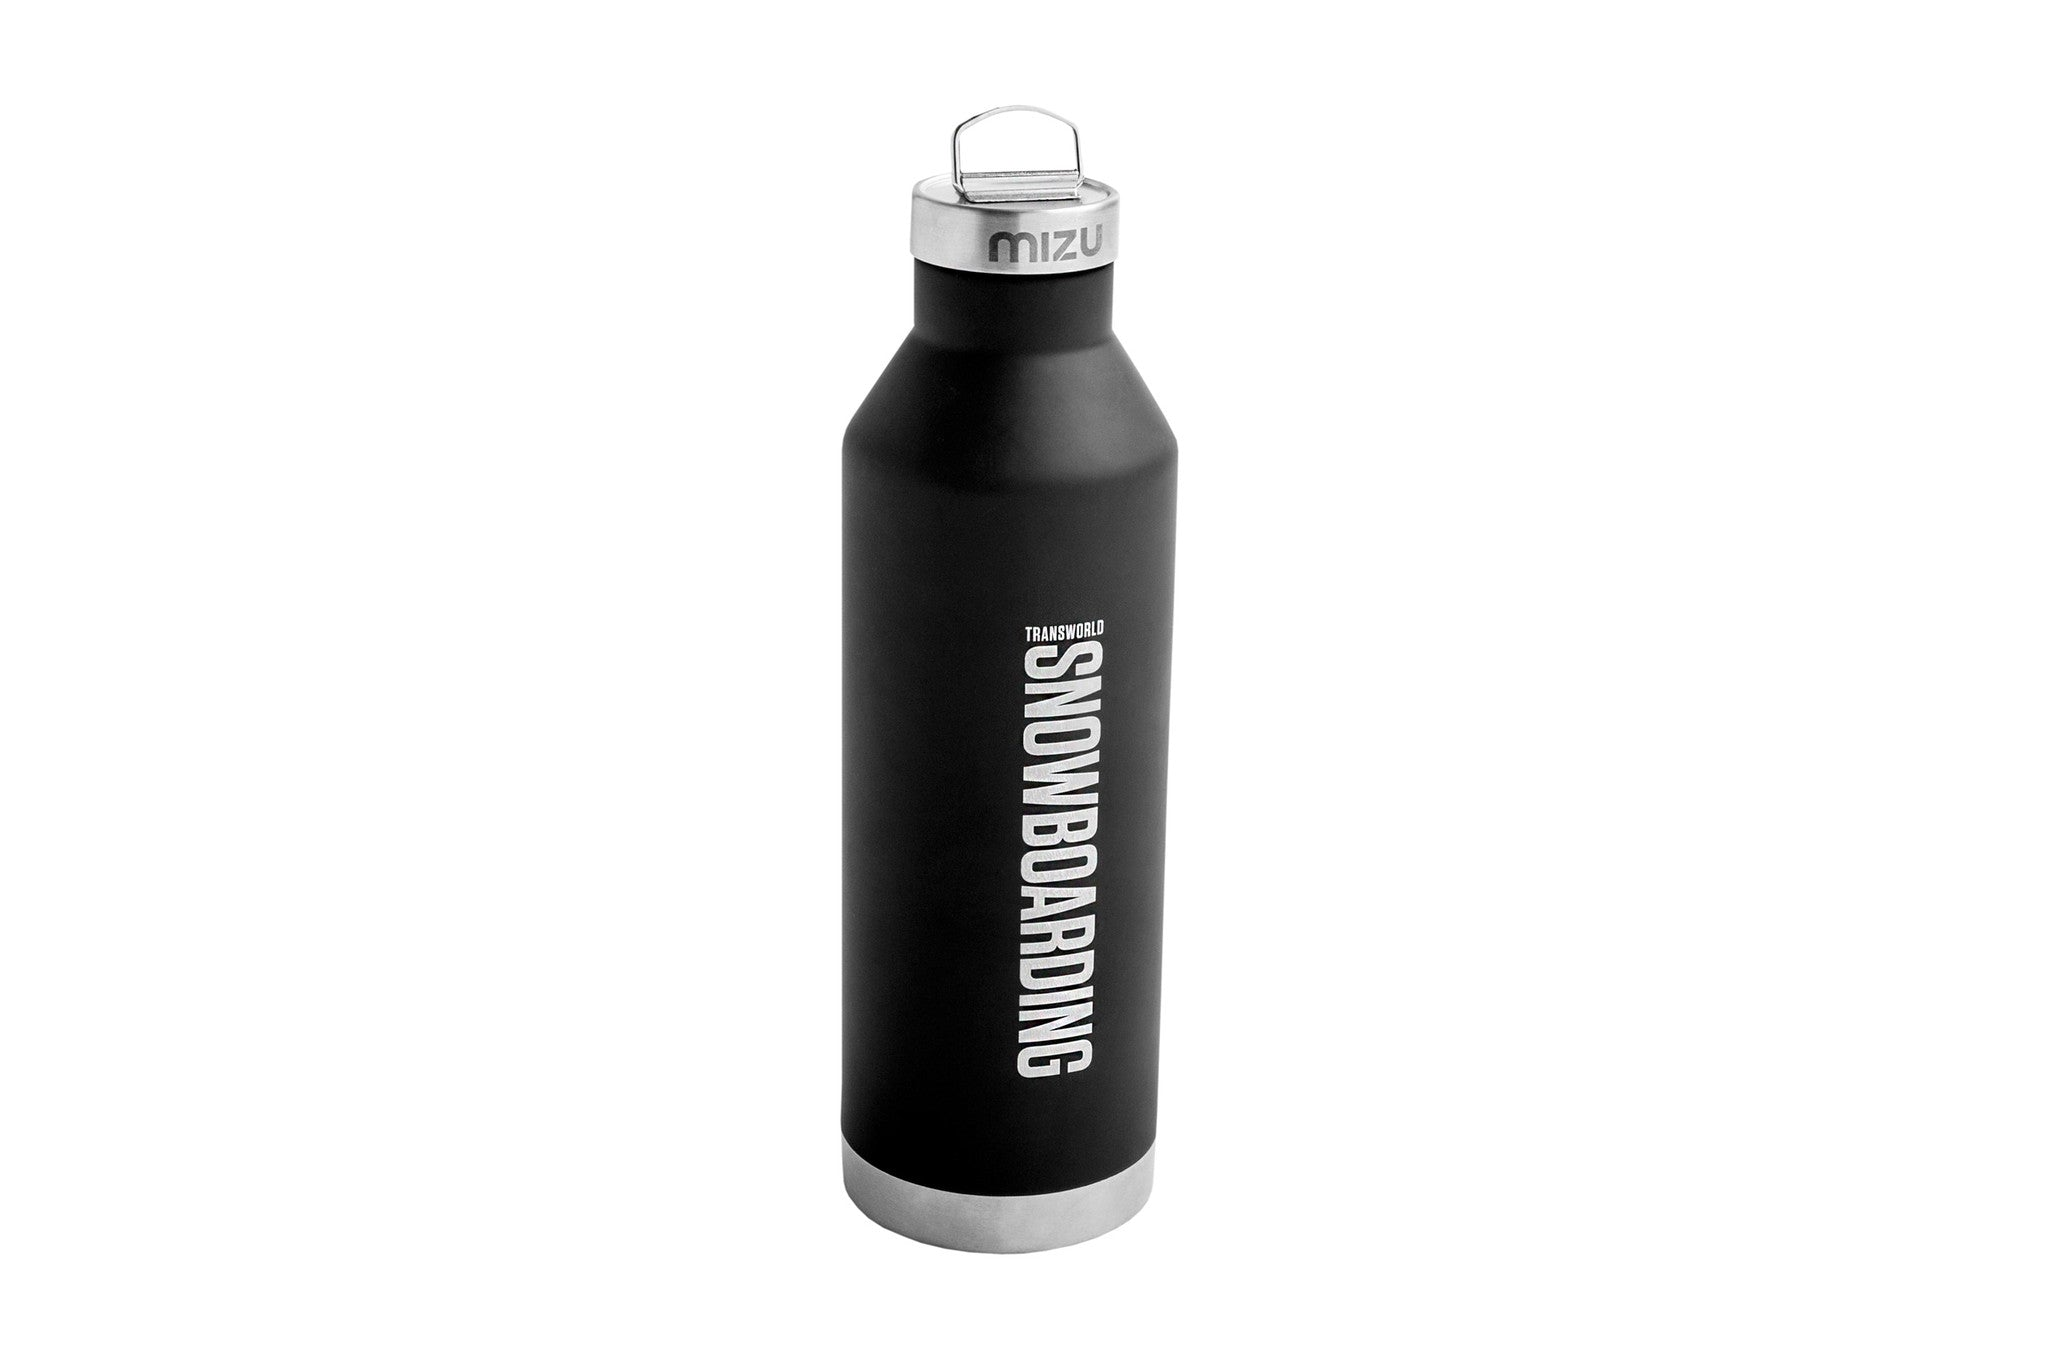 MIZU x TWSNOW Insulated V8 Water Bottle - Gloss Black